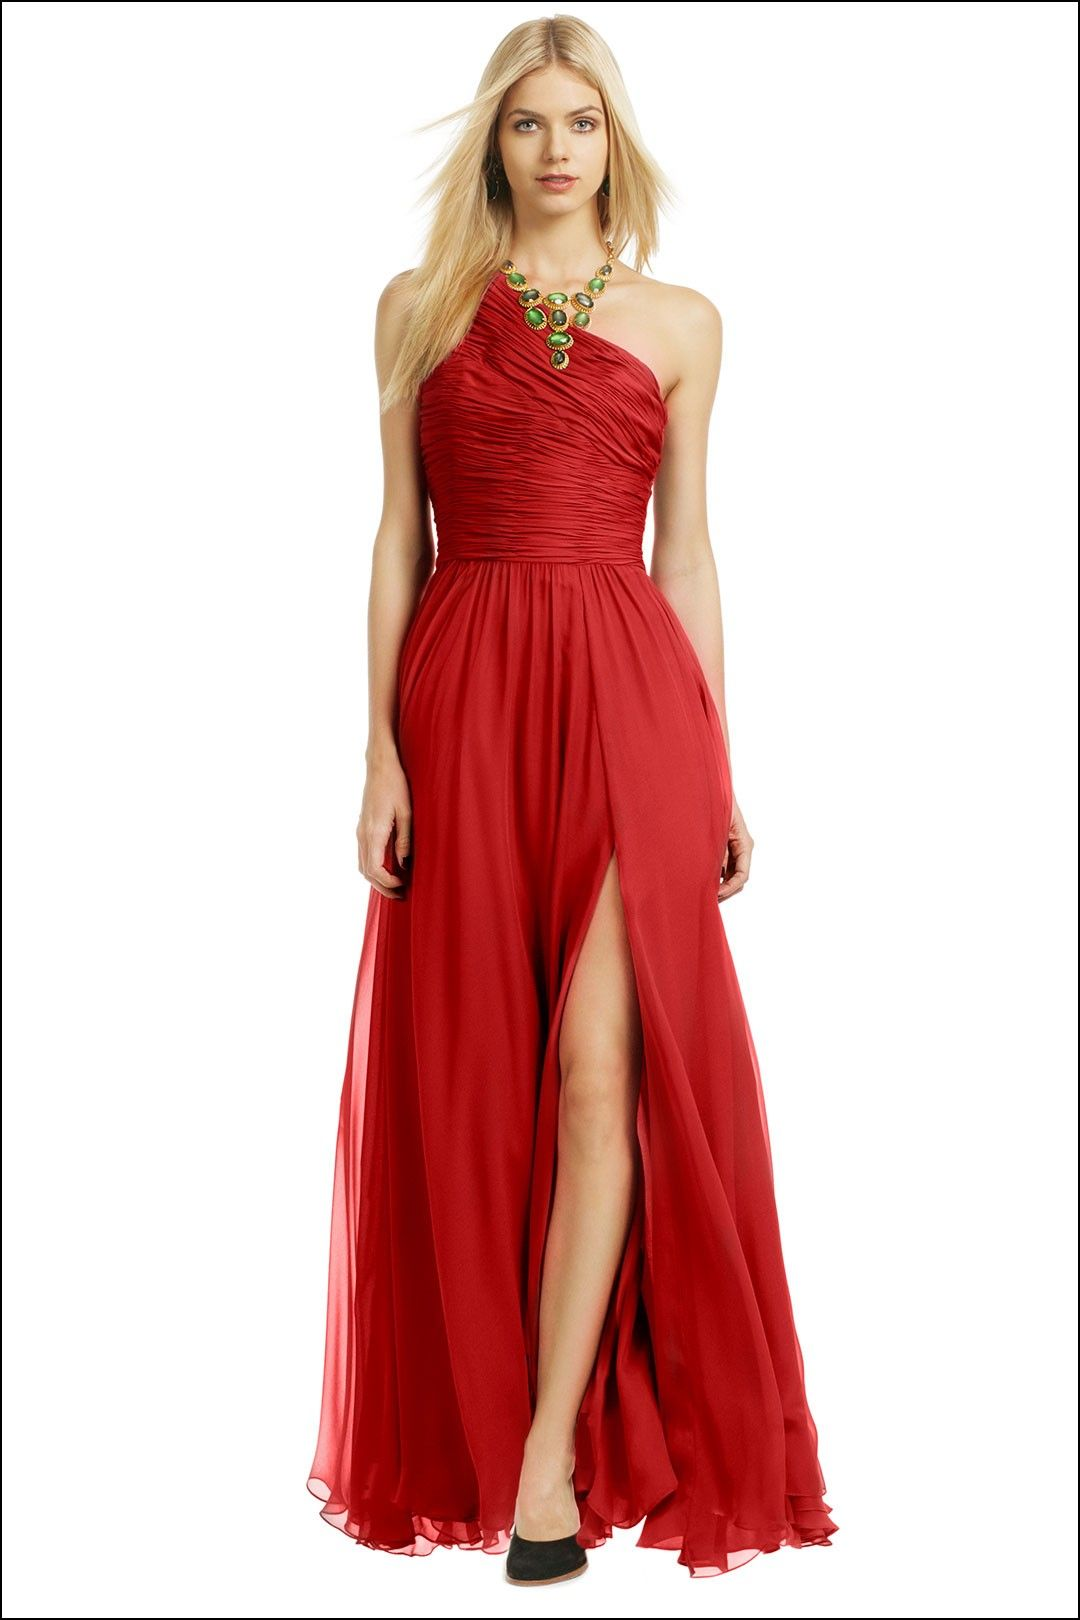 Nepal sunset gown dresses and gowns ideas pinterest nepal and